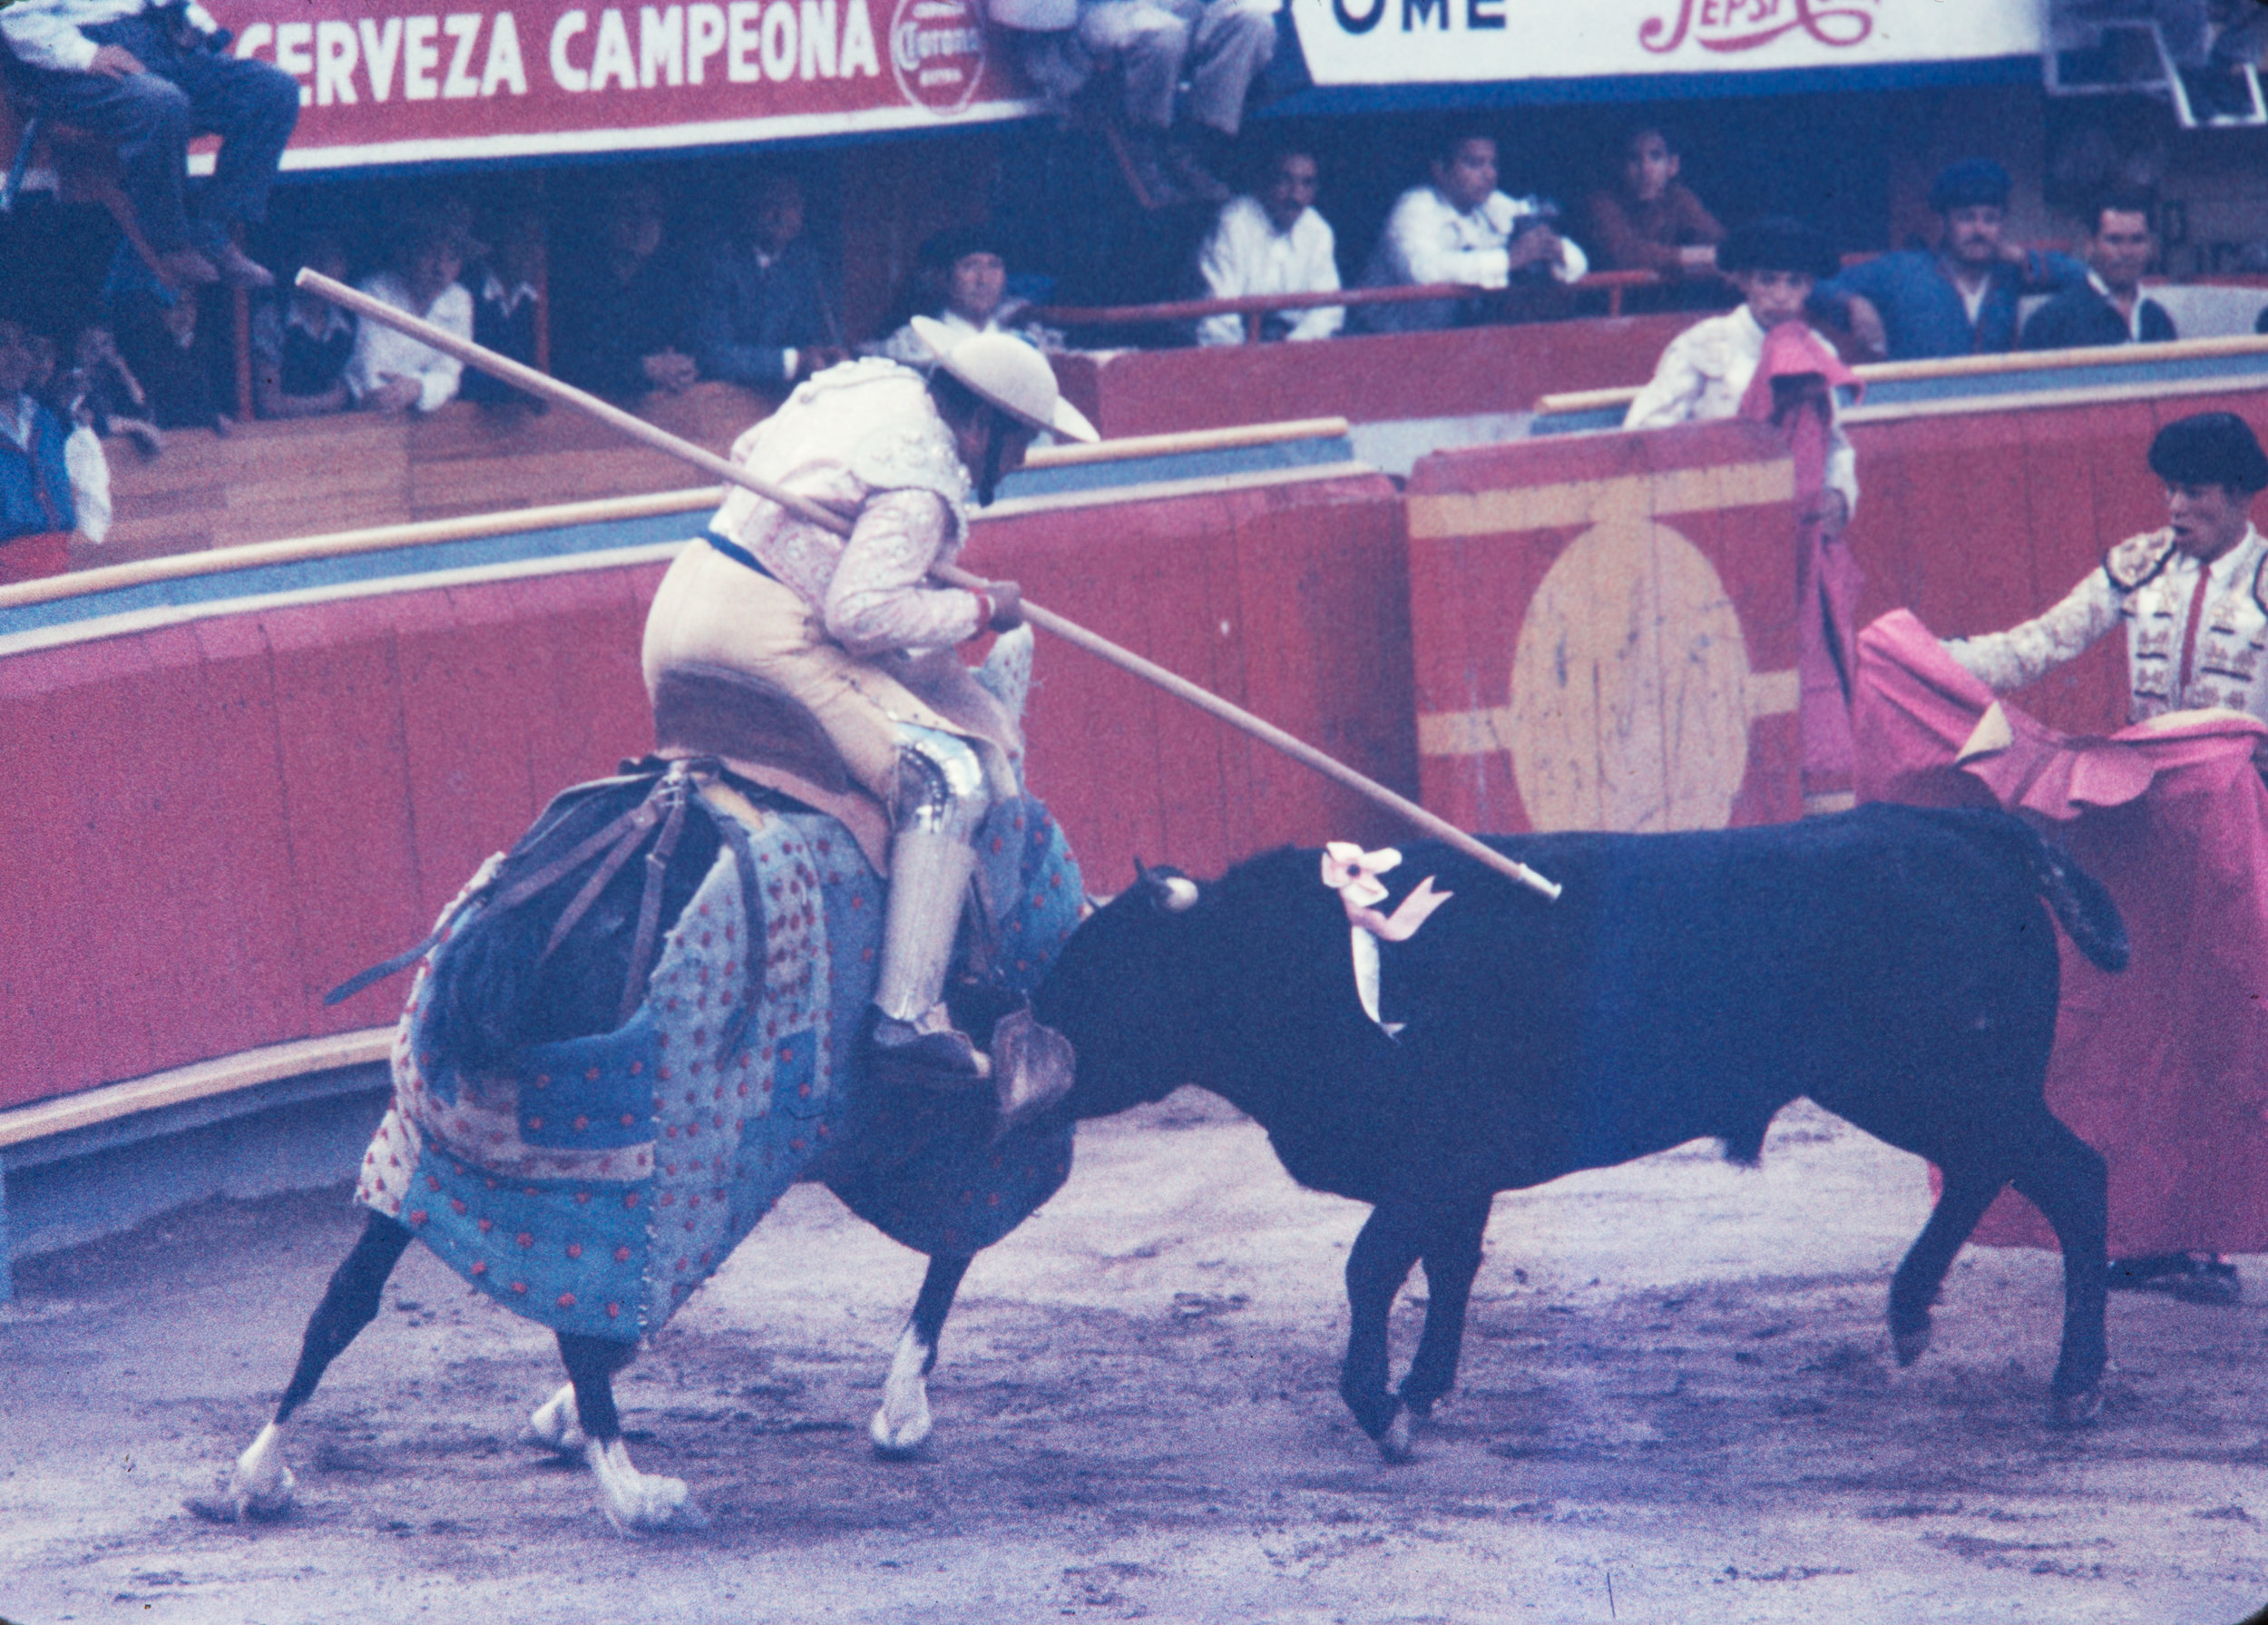 Taunting the bull #1, Mexico, 1957